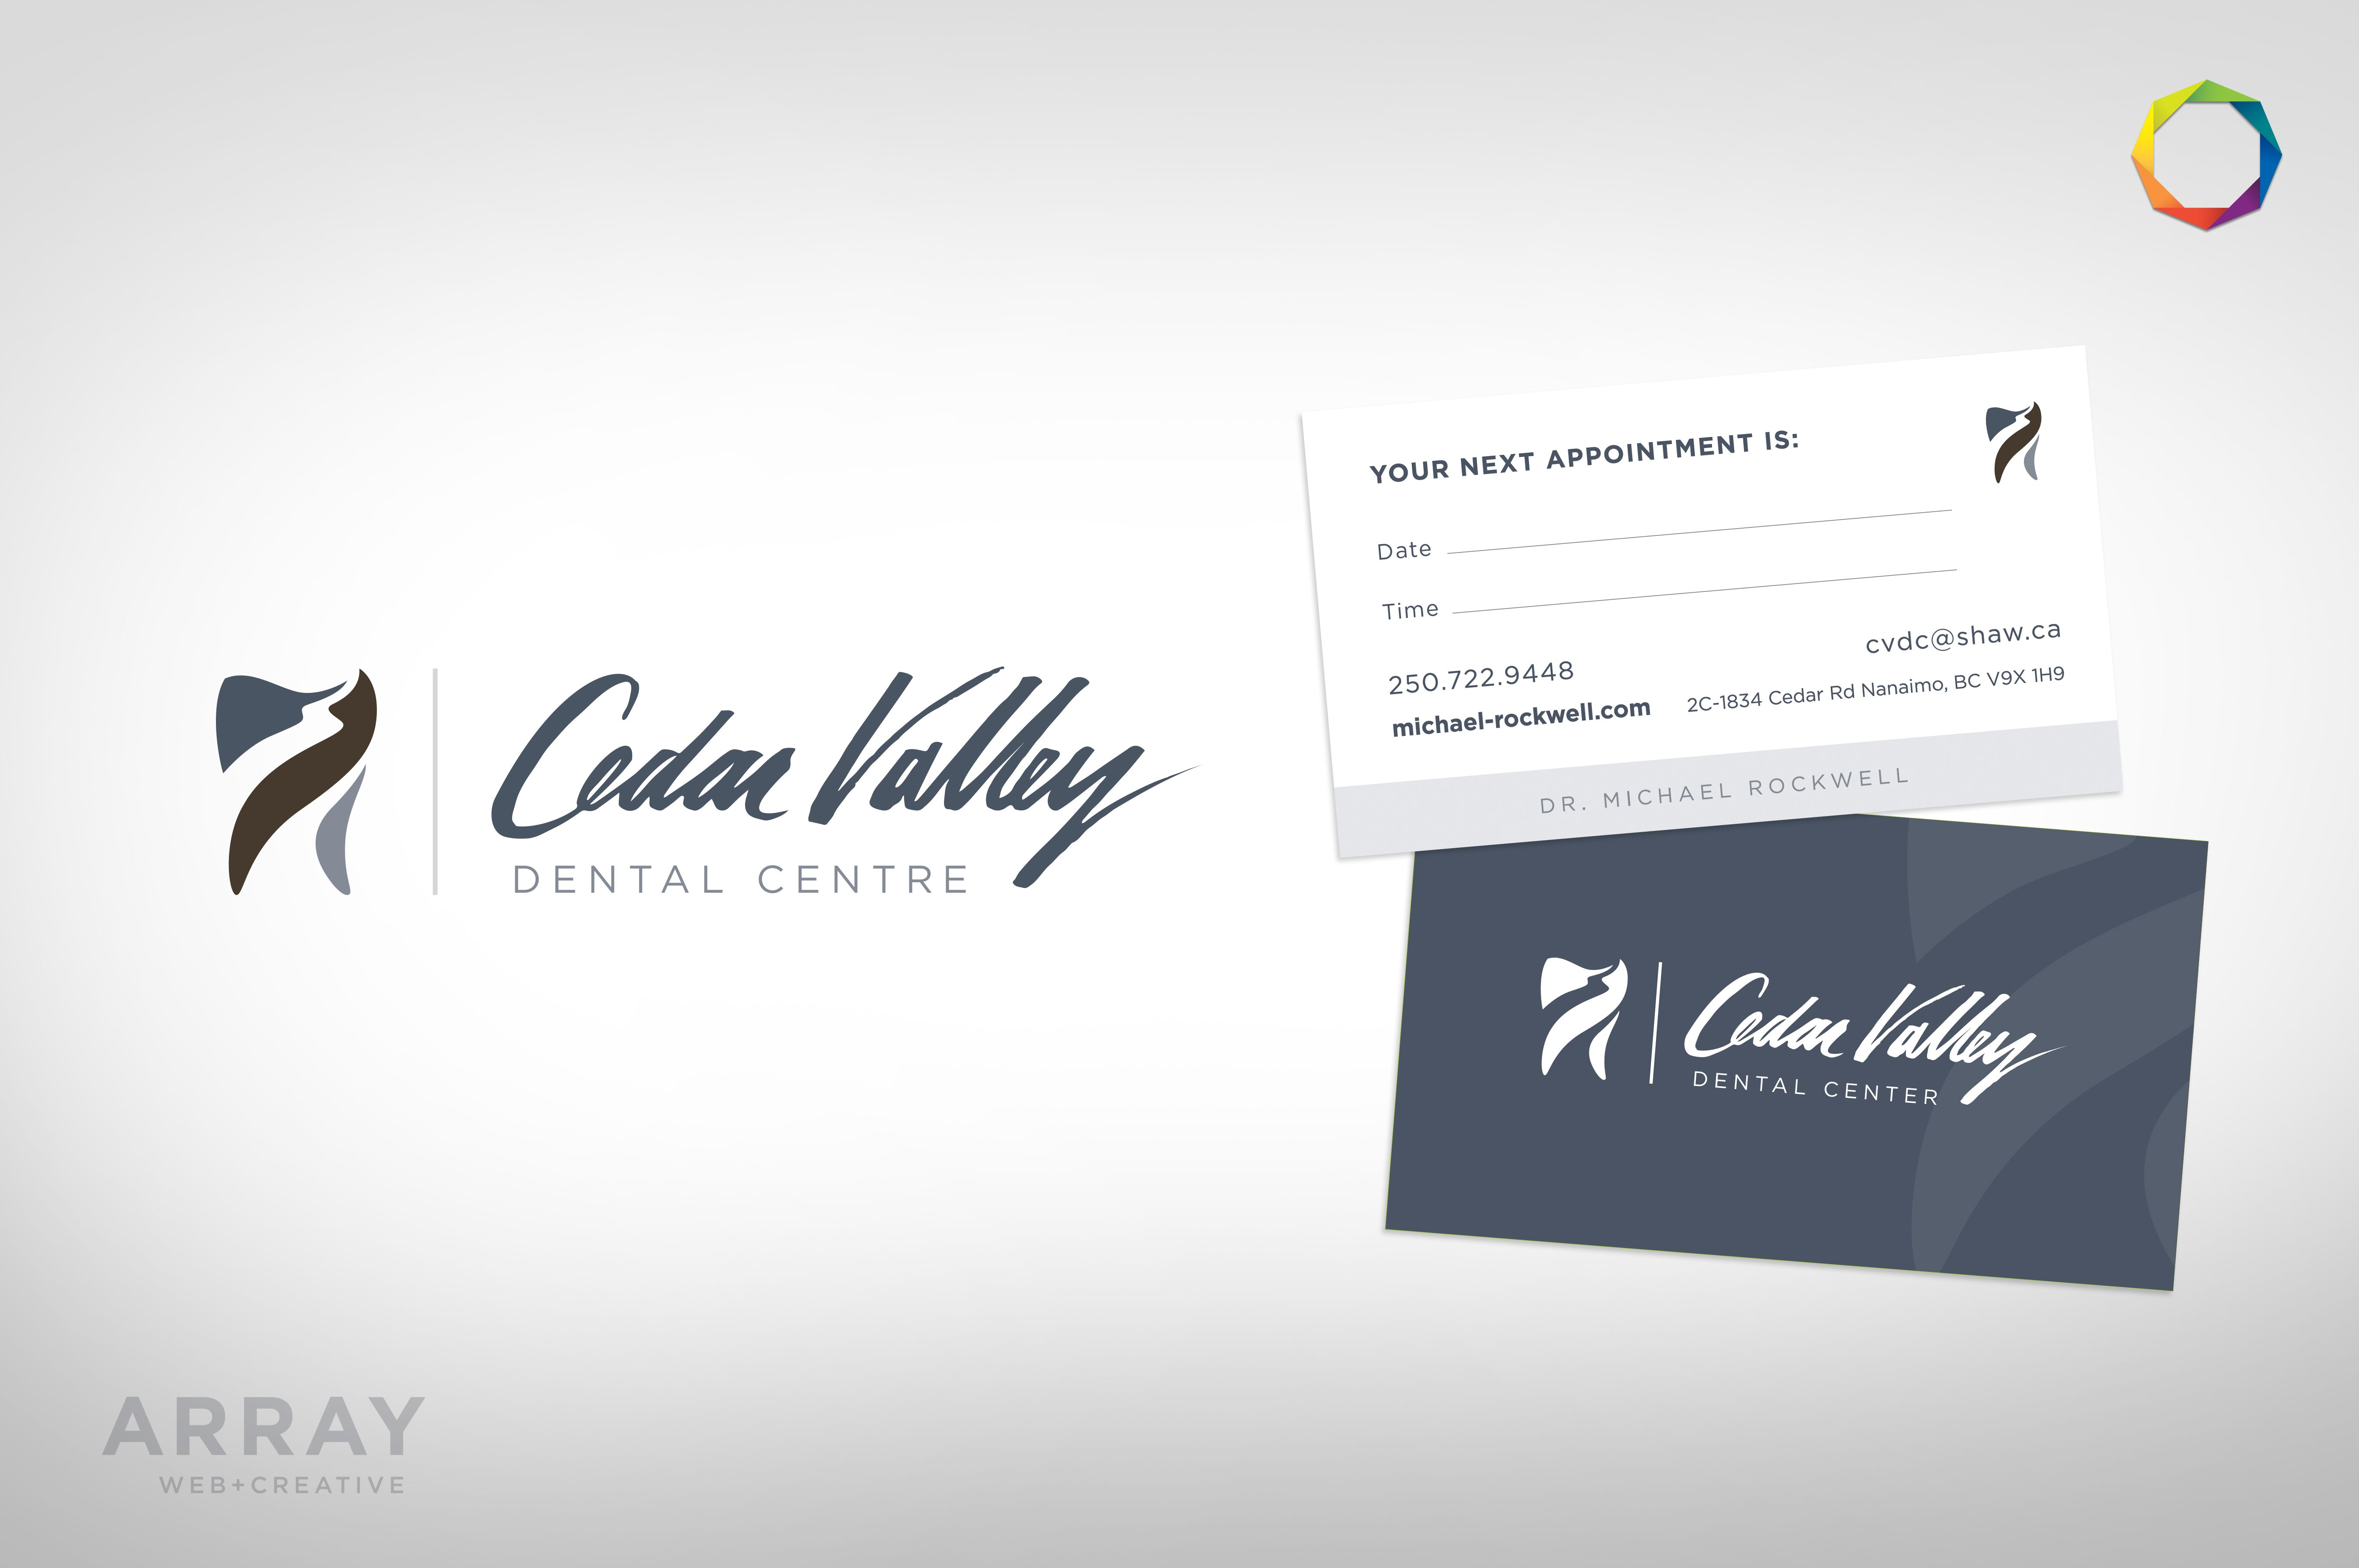 Brand & Appointment Cards for Nanaimo\'s Cedar Valley Dental - Array ...